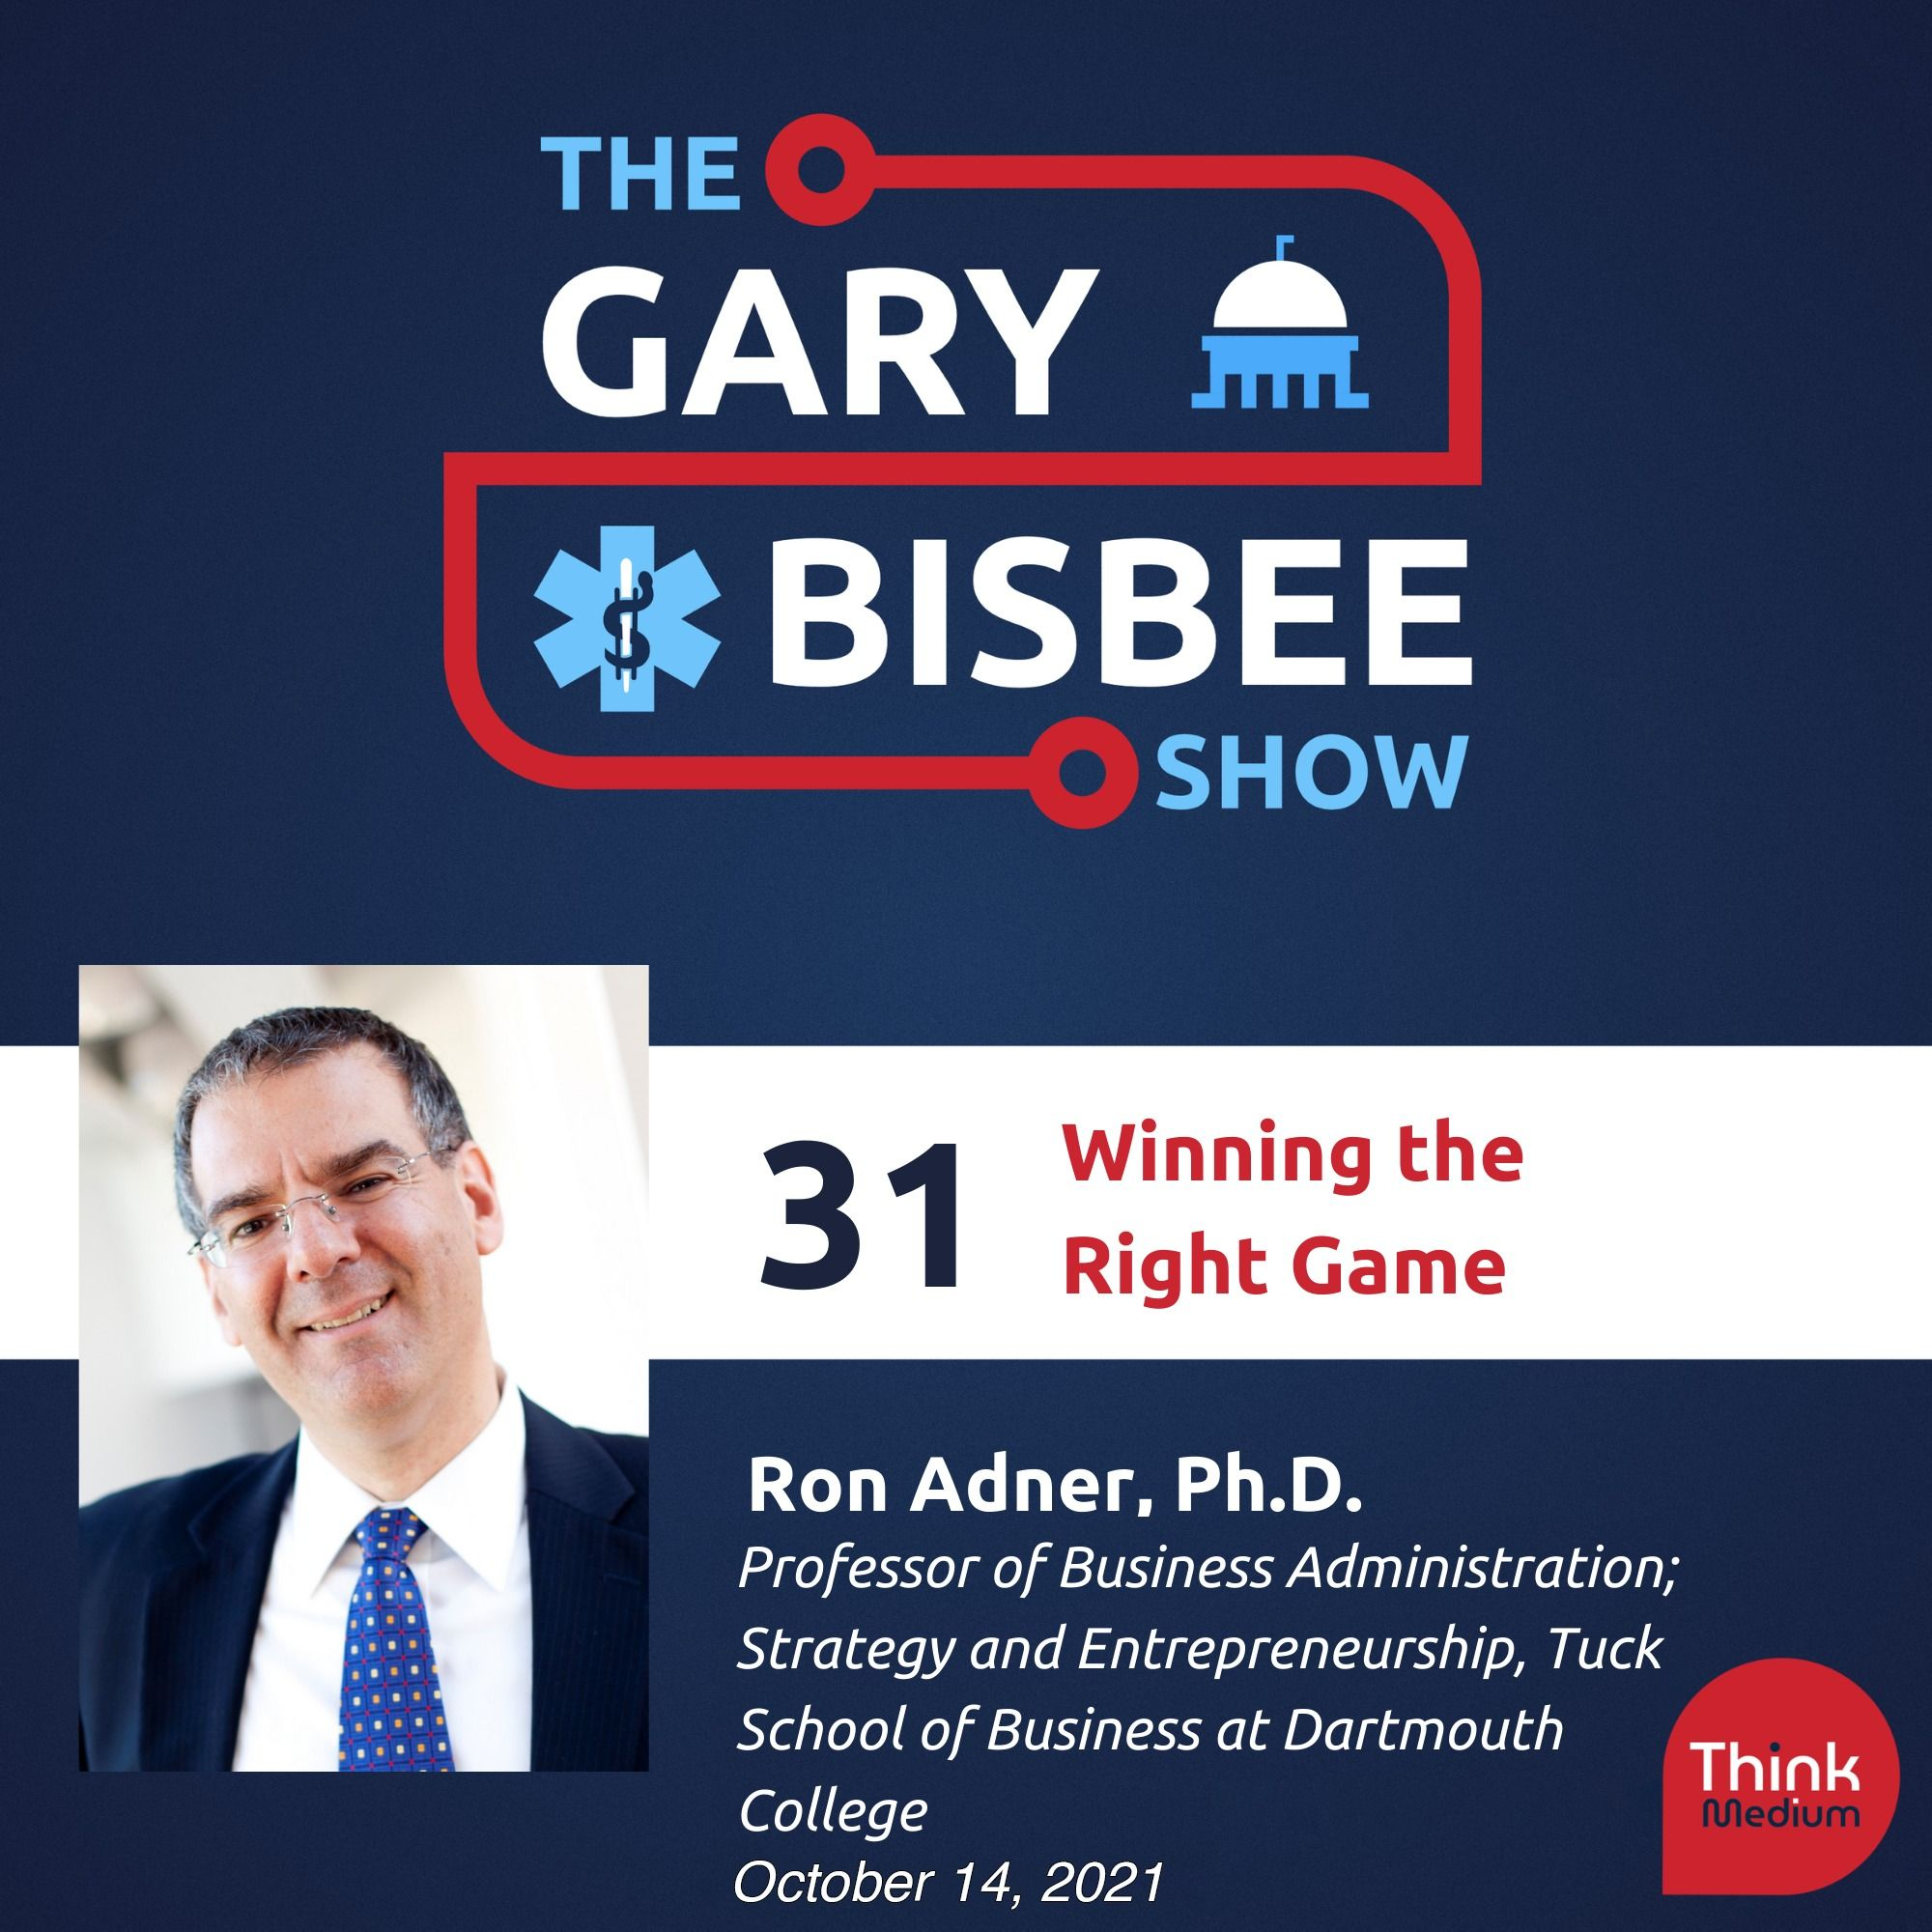 31: Winning the Right Game, with Ron Adner, Professor of Business Administration; Strategy and Entrepreneurship, Tuck School of Business at Dartmouth College